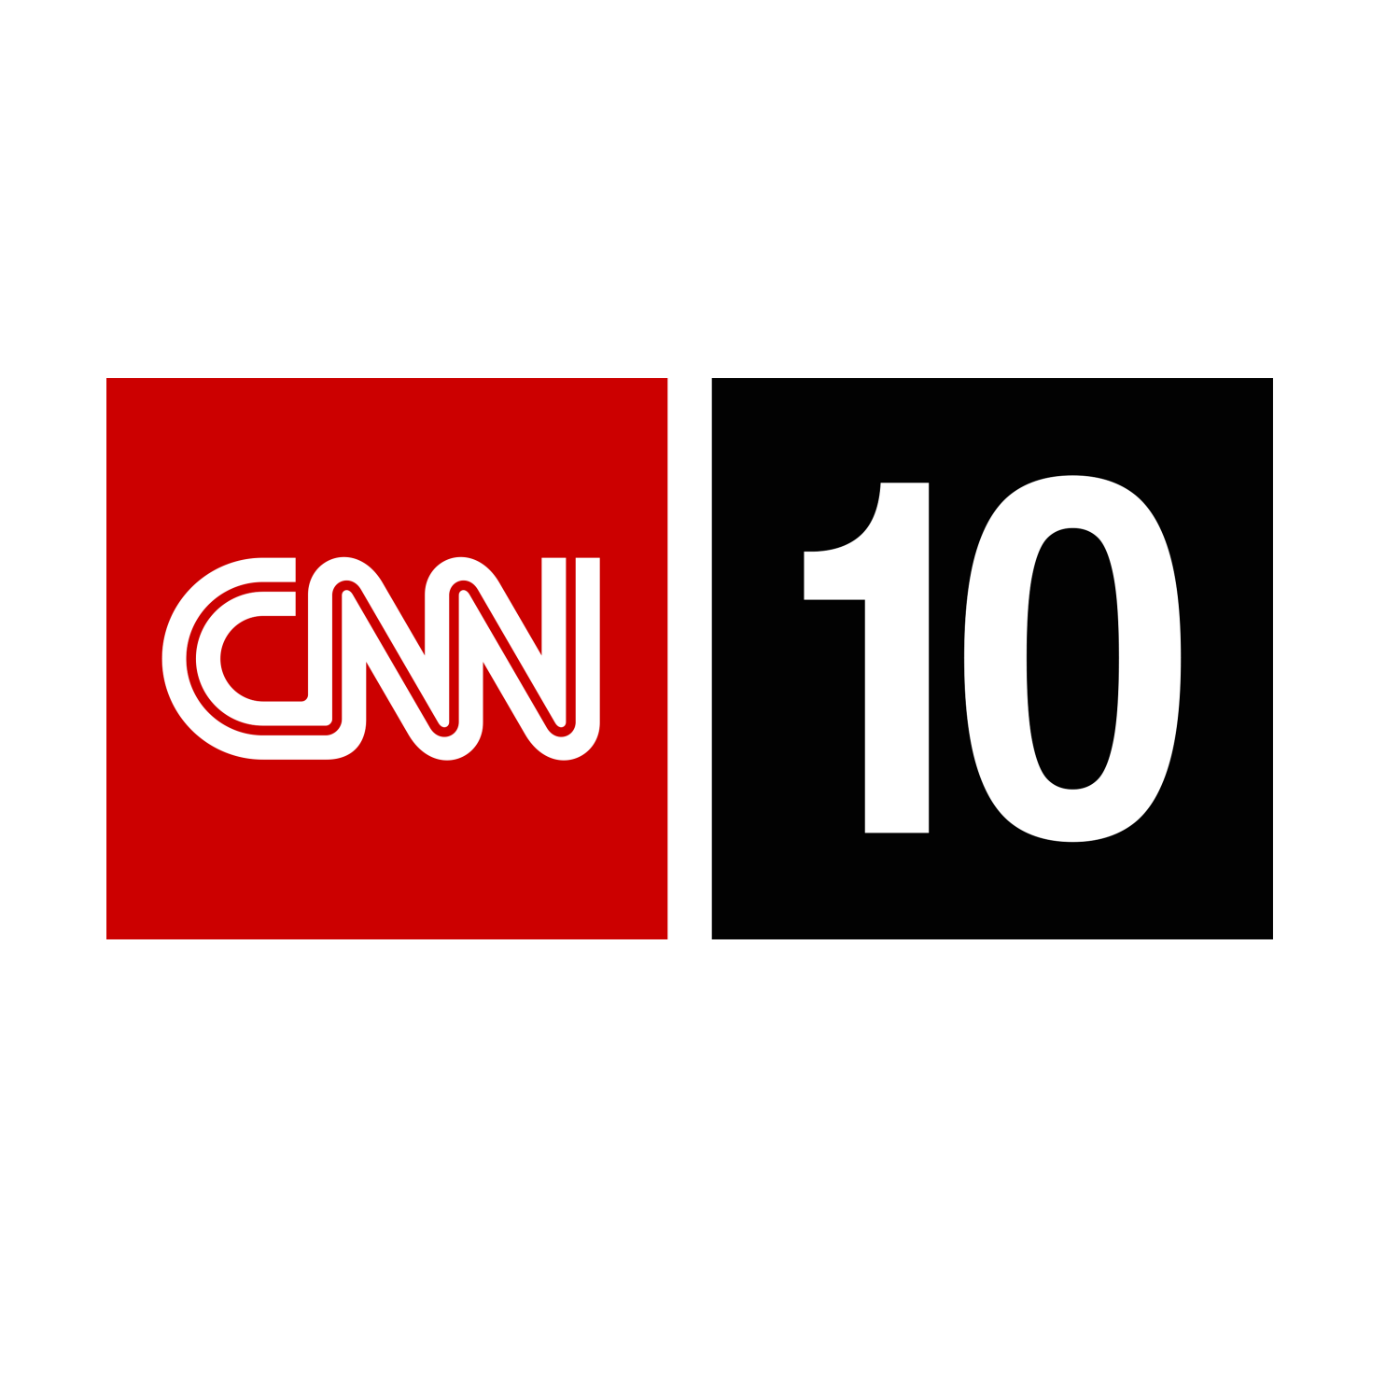 CNN Student News - May 24, 2013